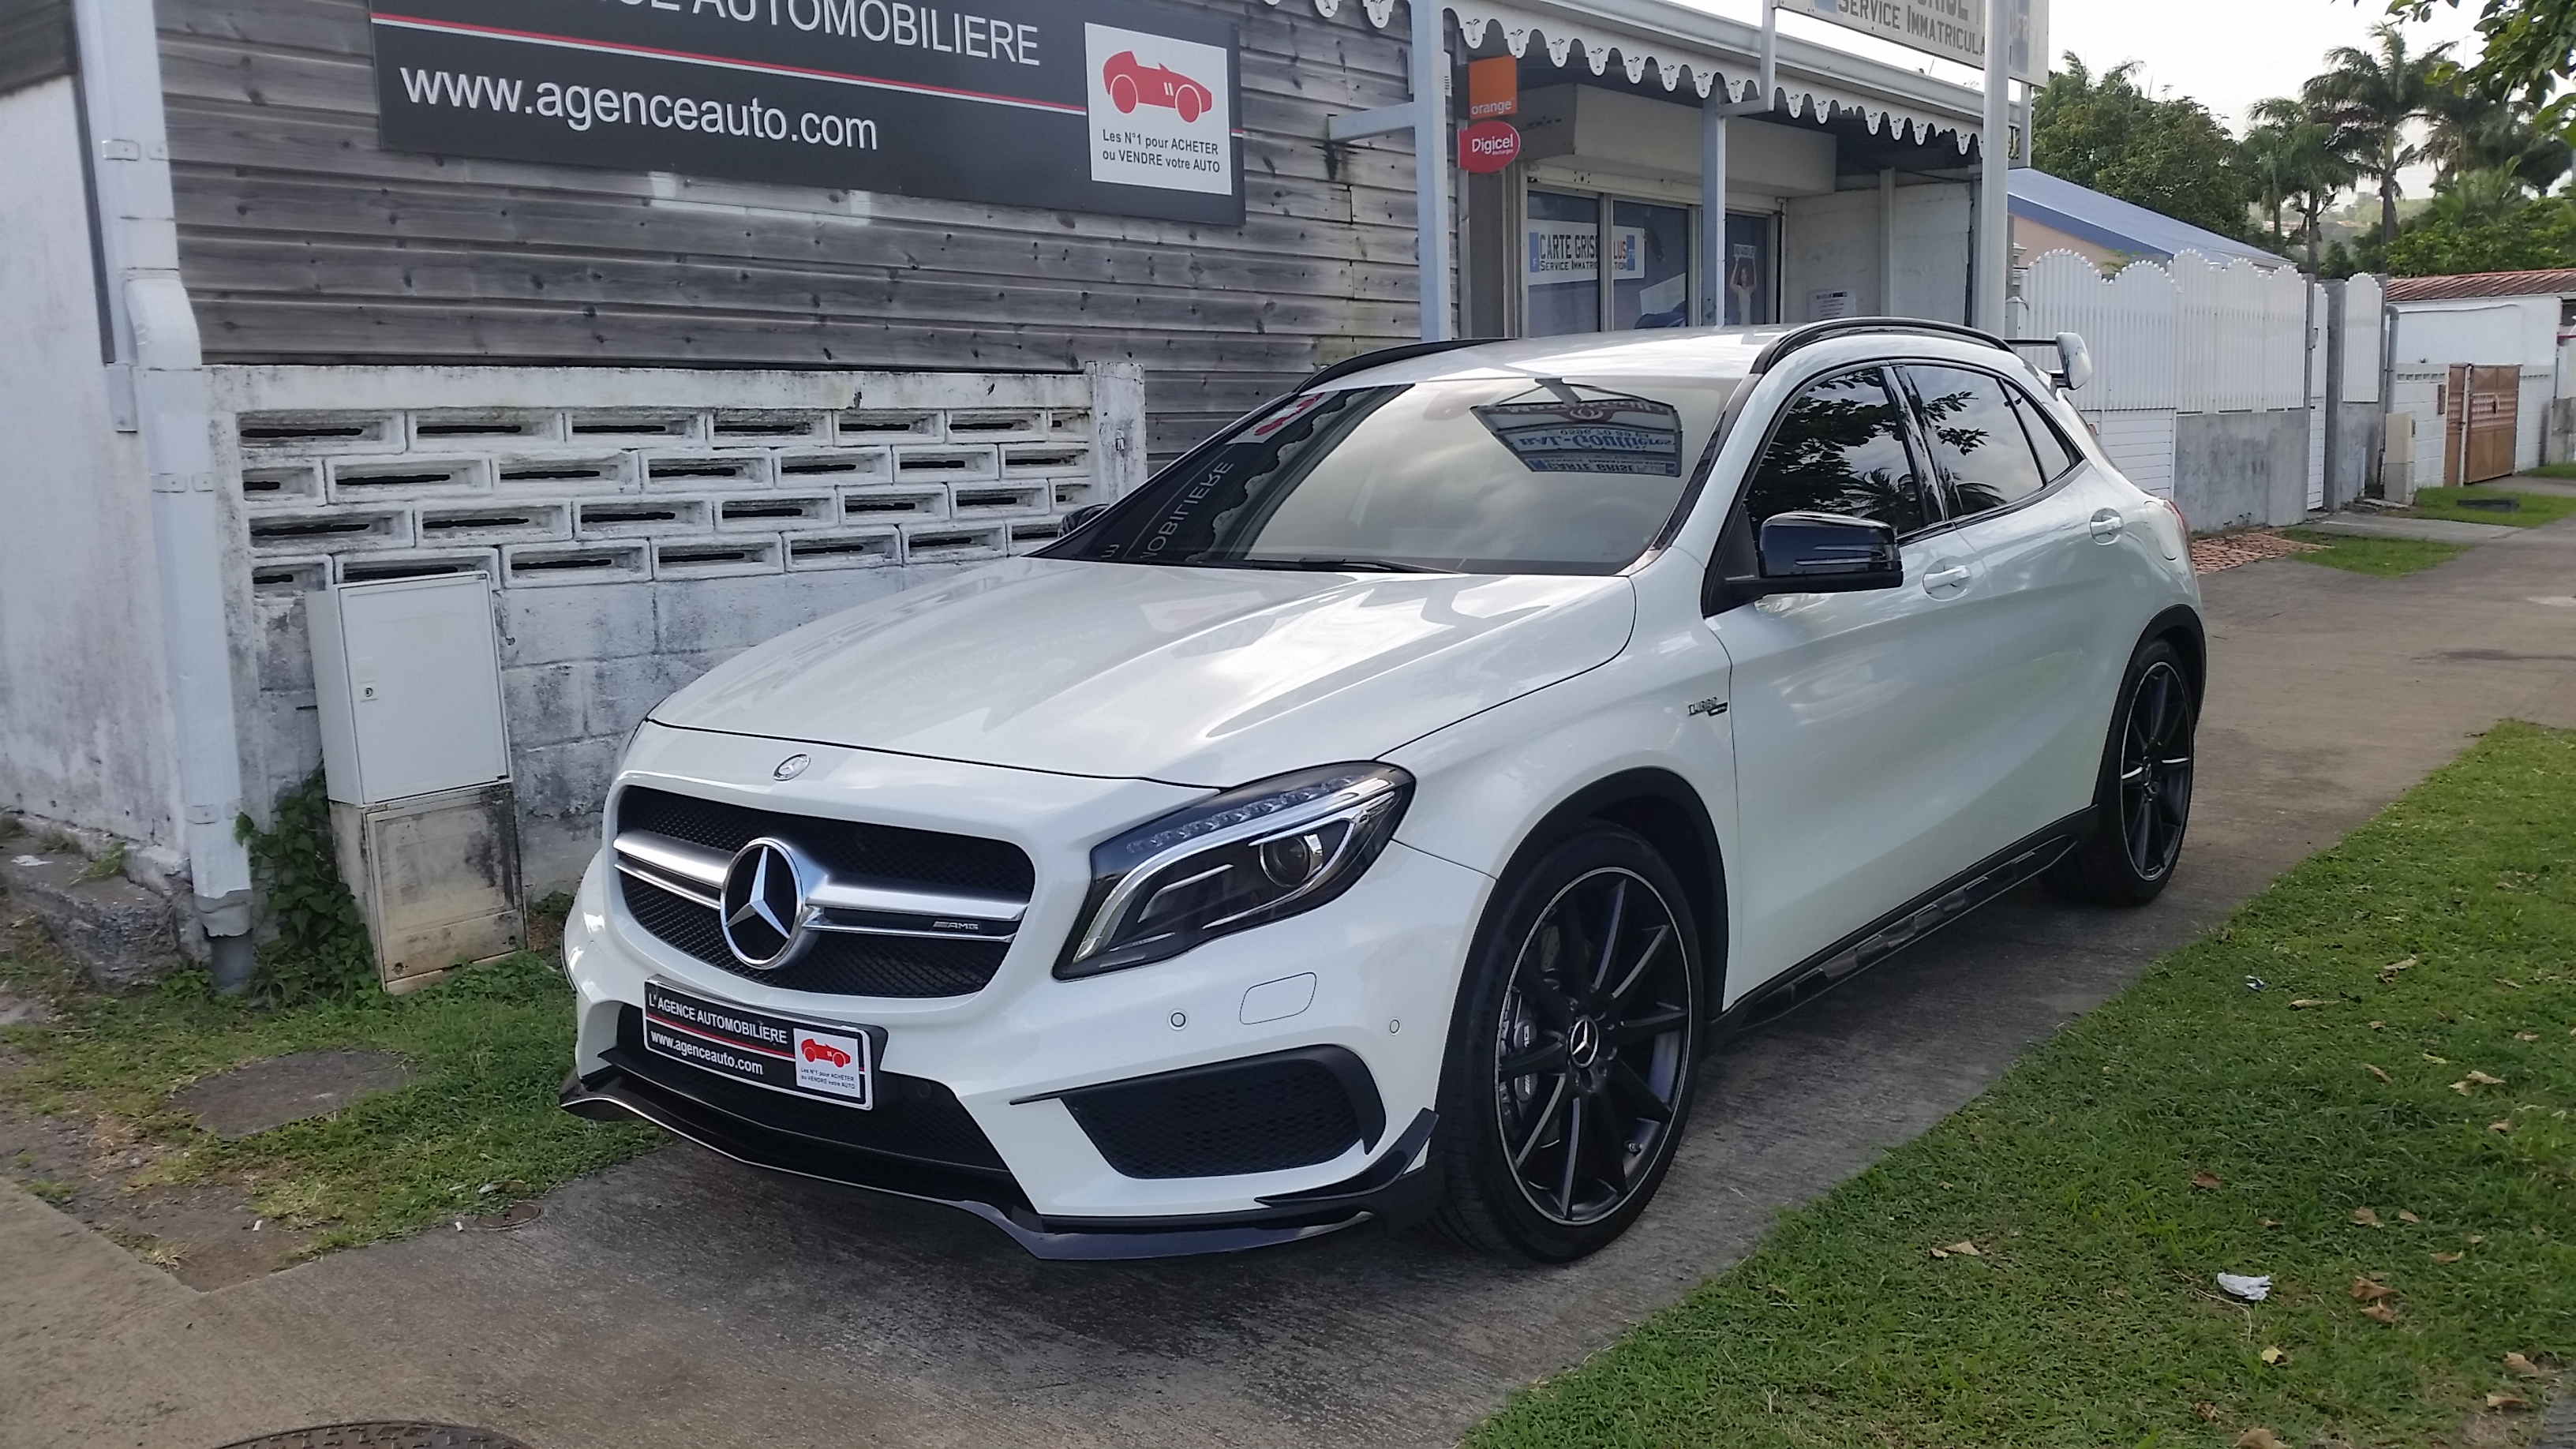 mercedes gla 45 amg 4matic bva7 occasion martinique pas cher voiture occasion martinique 97200. Black Bedroom Furniture Sets. Home Design Ideas